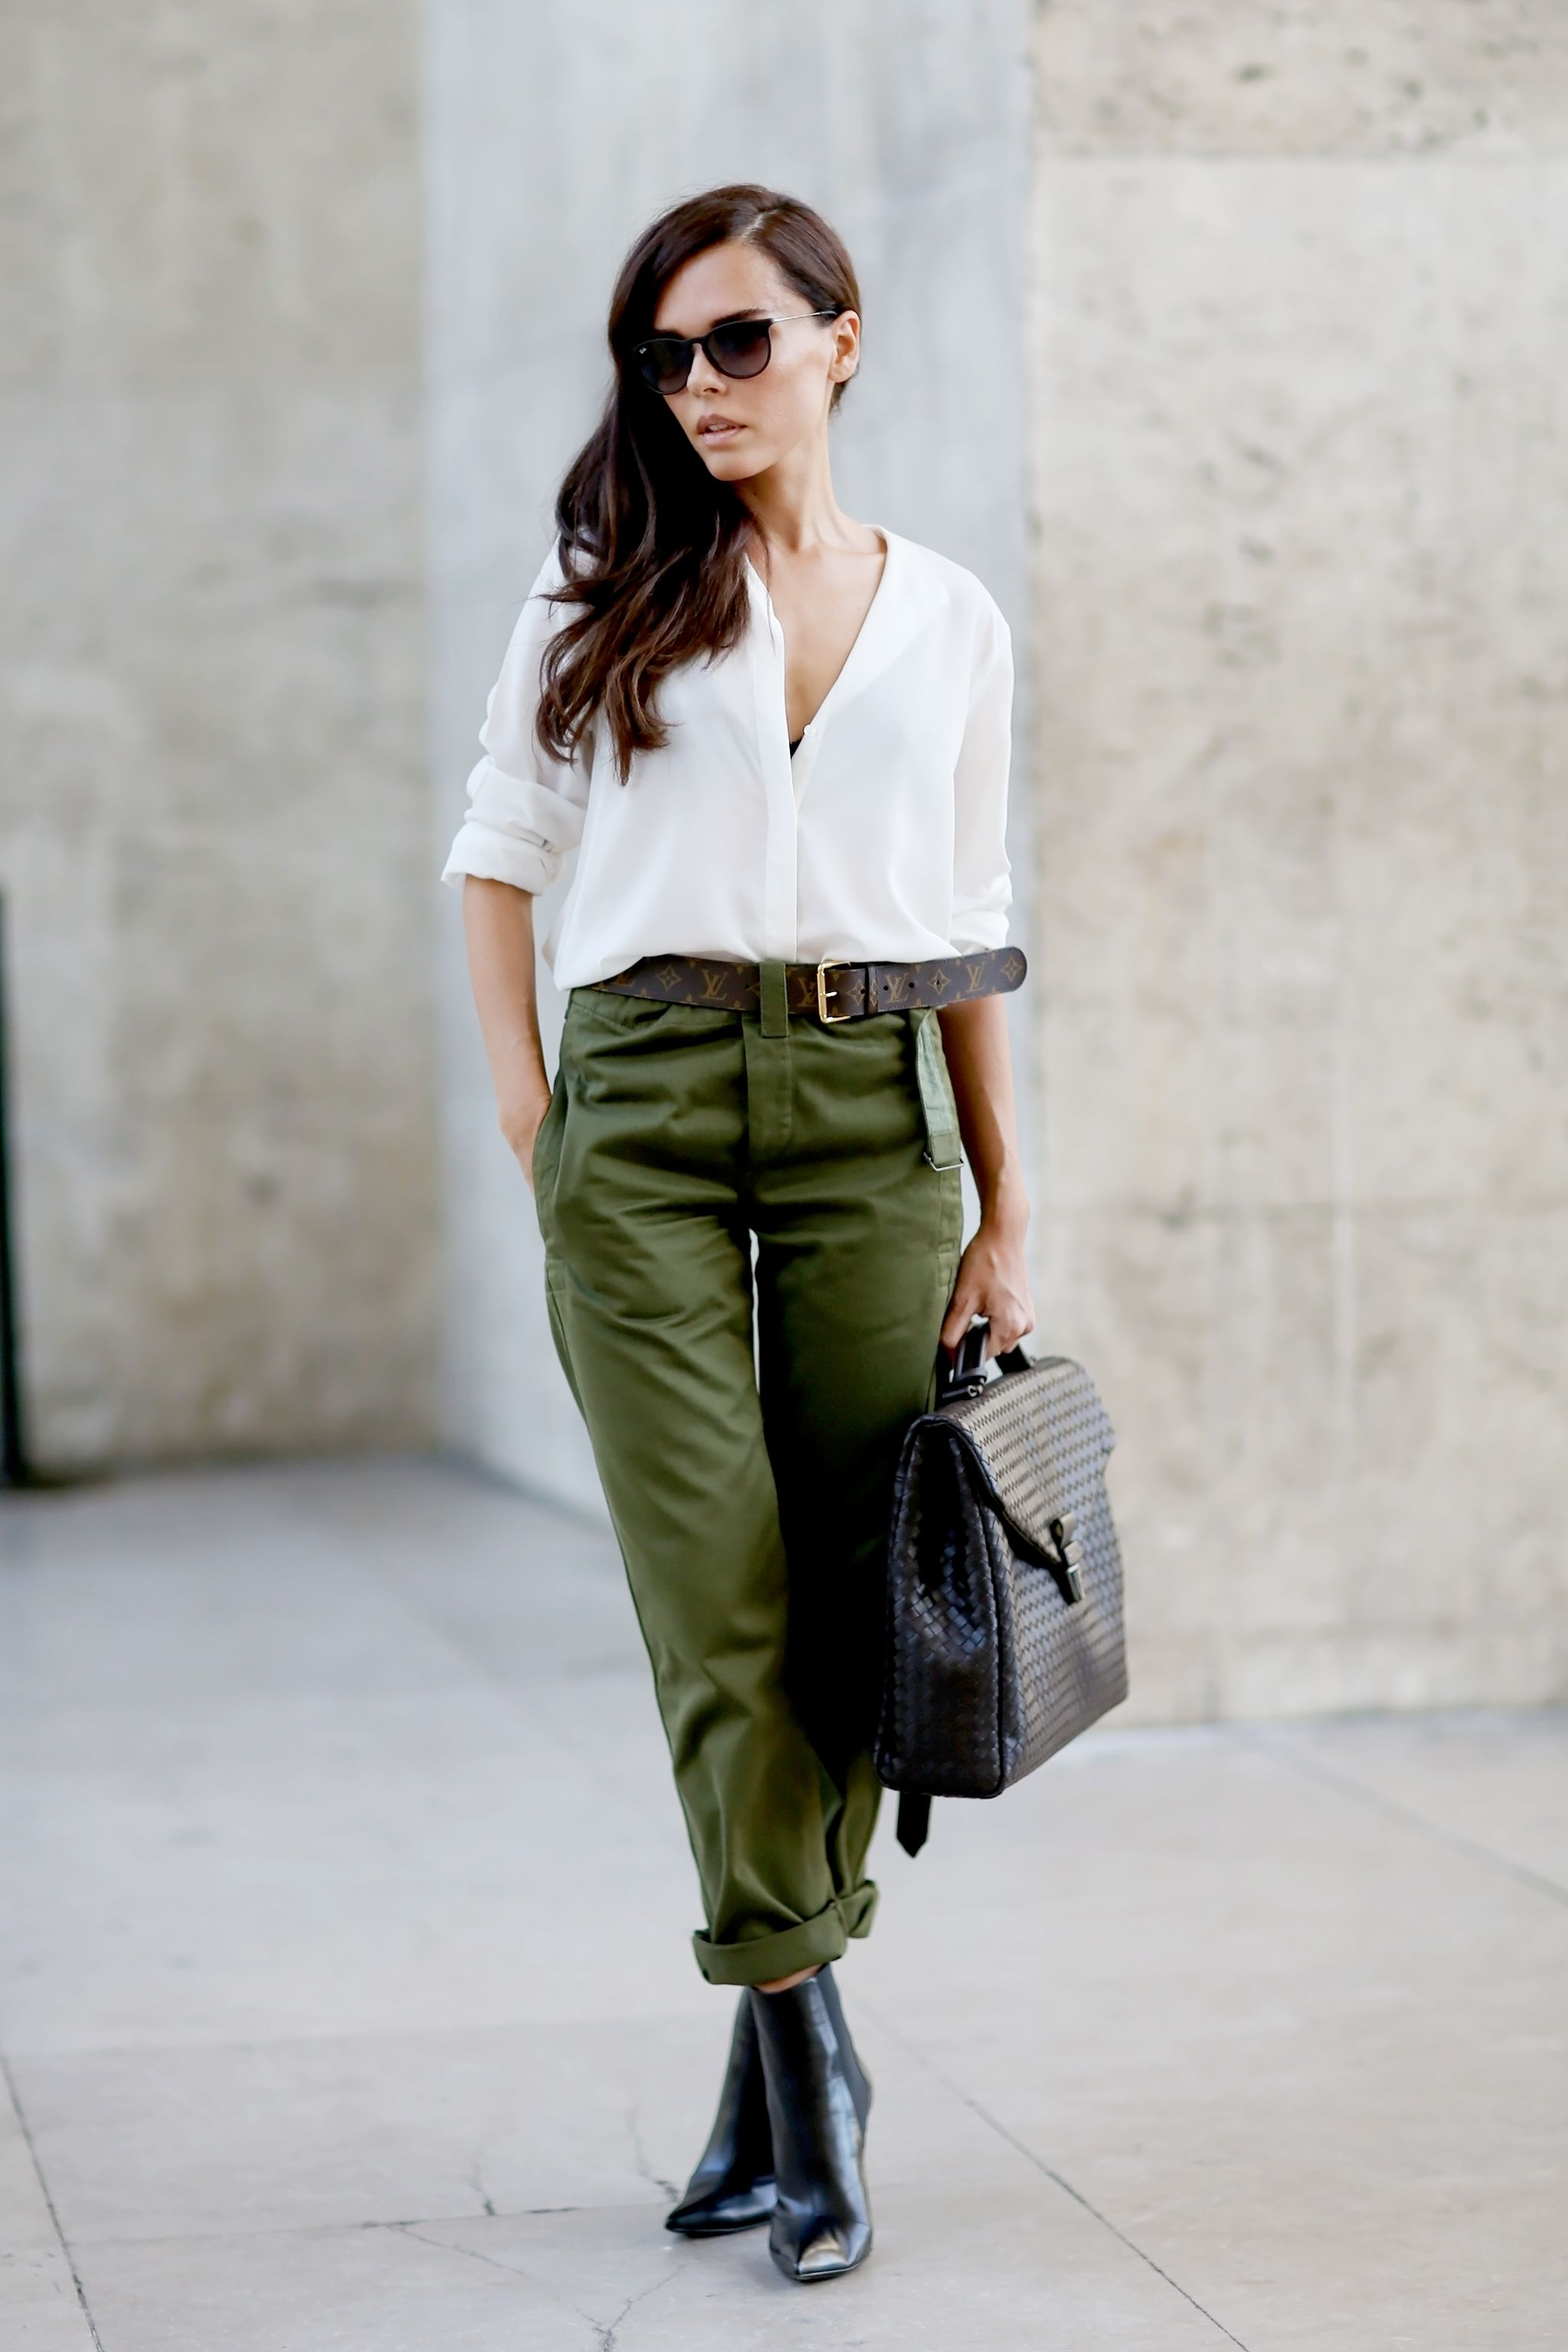 How to military wear green pants